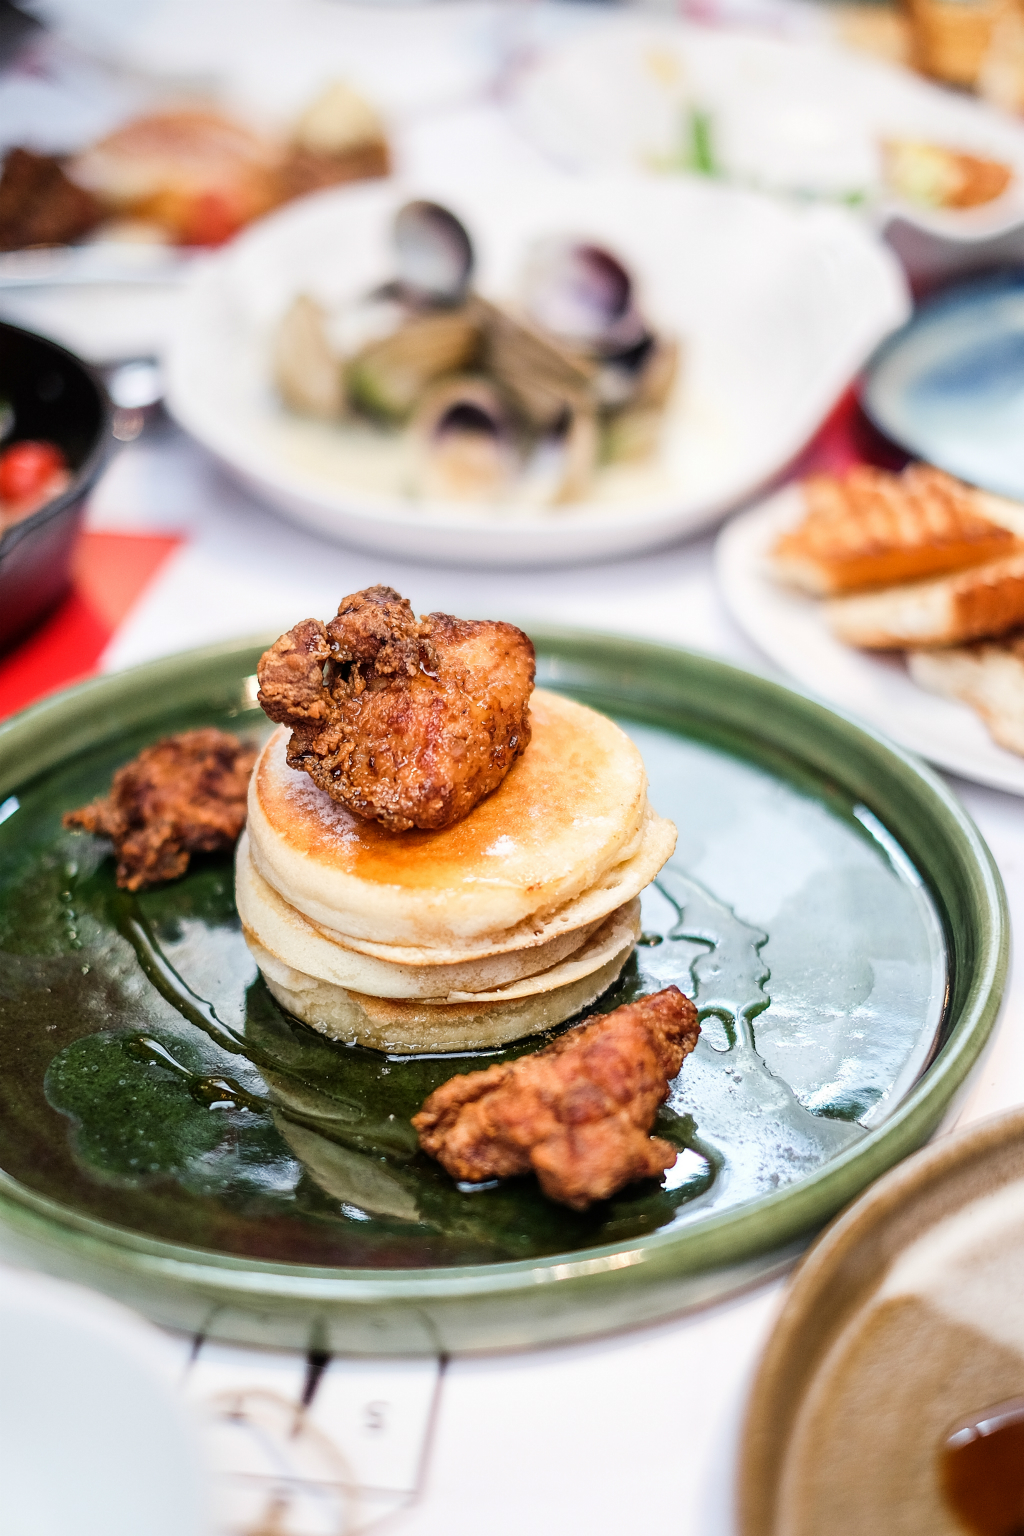 Food Guide to Jalan Besar & Lavender: 5th Quarter's pancakes and fried chicken